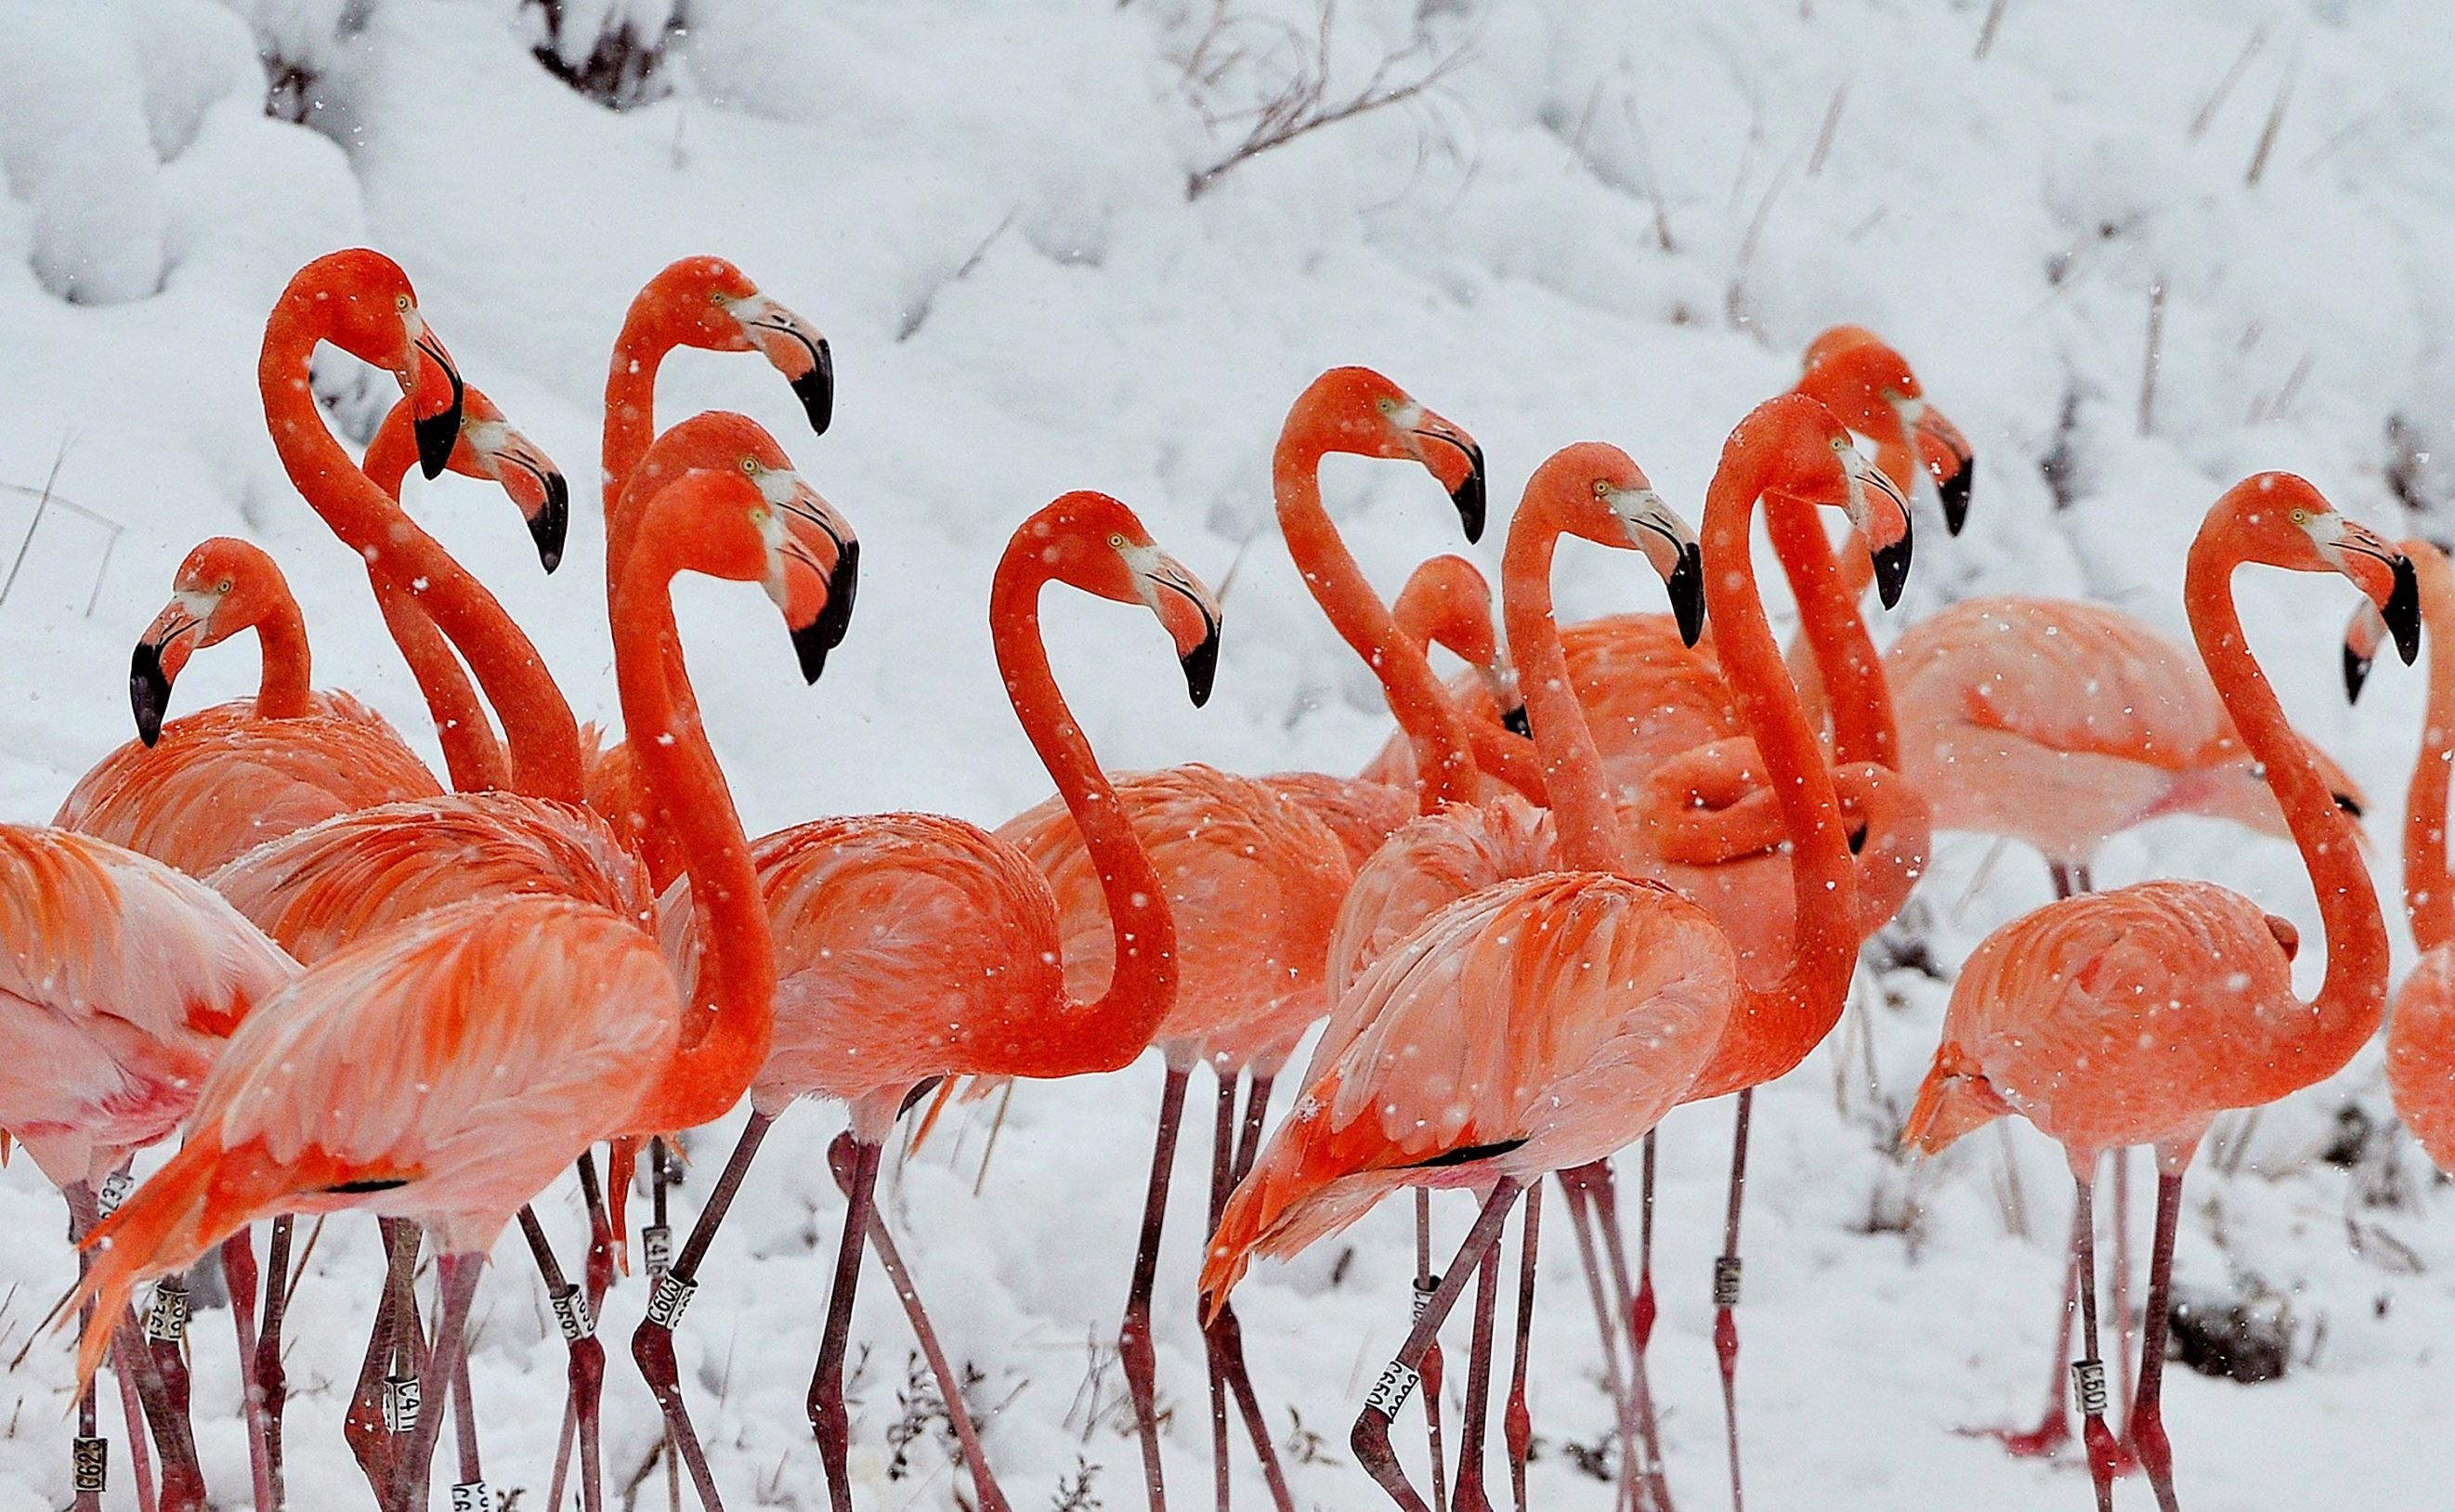 Pretty little flamigos all in a row, I mean in the snow! Weird huh? Snow falls on a flock of flamingos standing on a snow-covered field at a wildlife zoo in Hefei, China, on Jan. 29, 2015